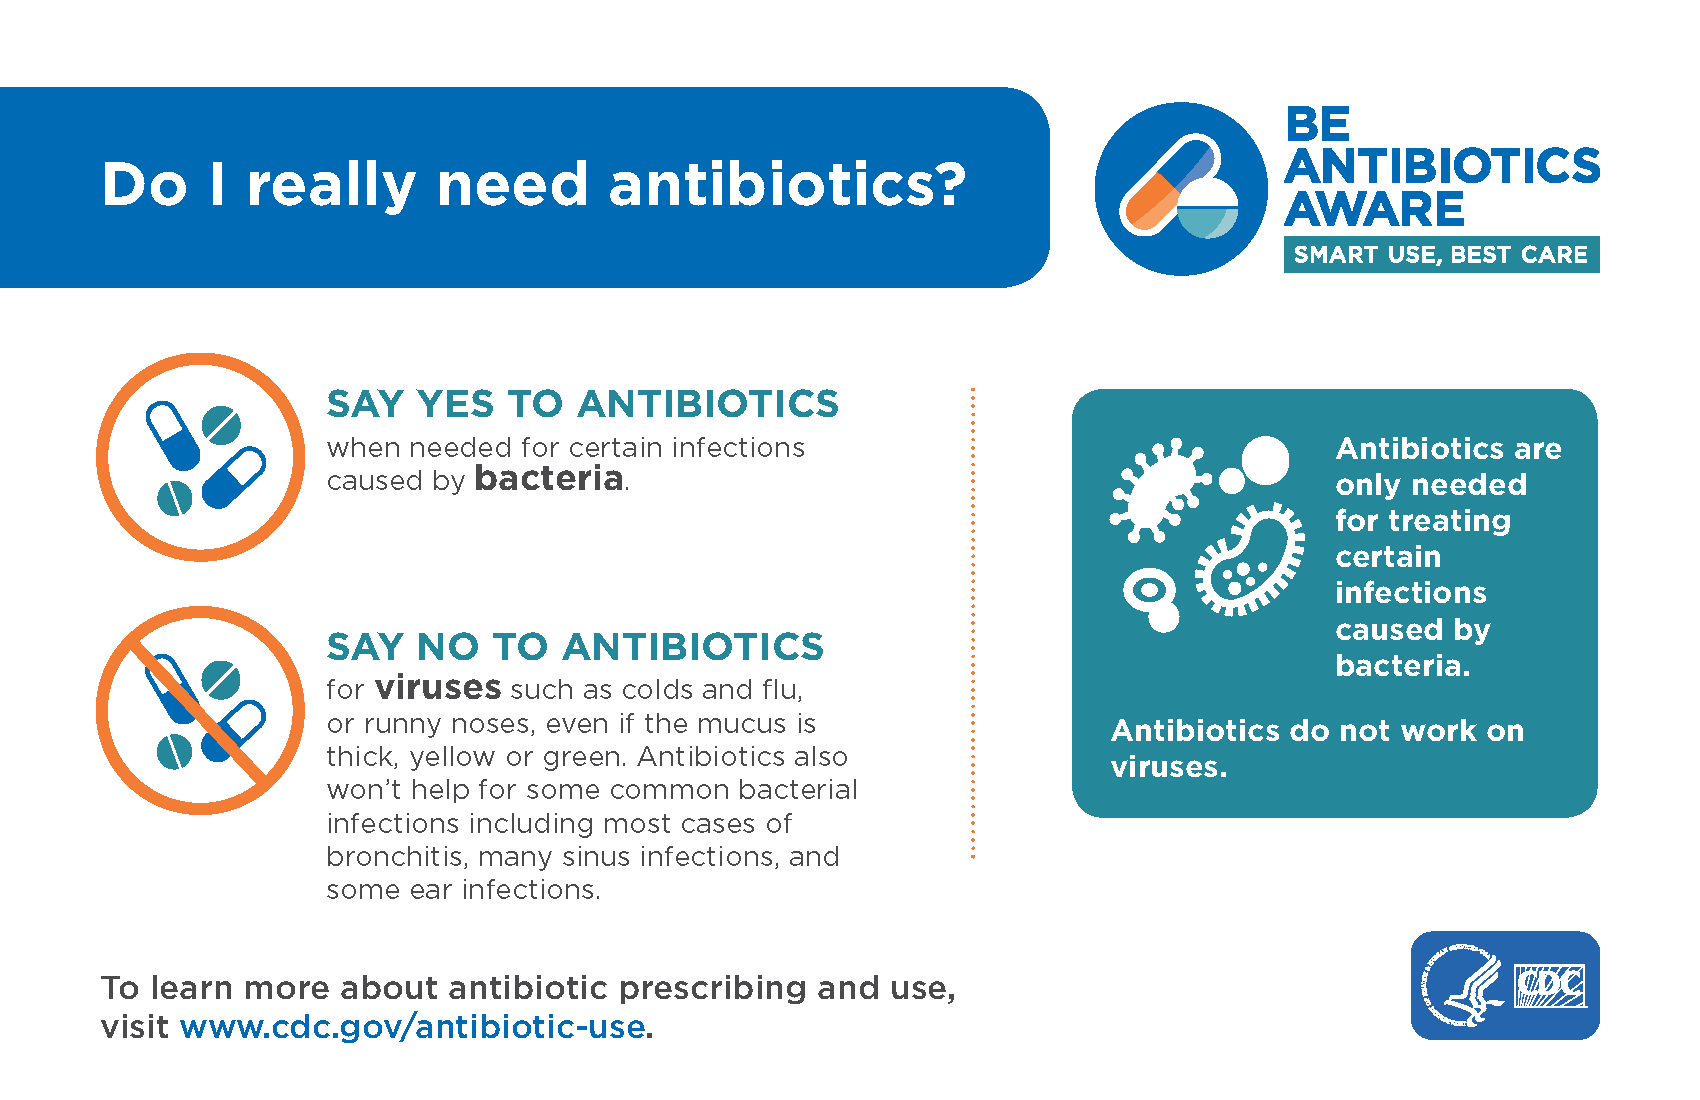 Get Smart About Antibiotics: When Are Antibiotics Right For You